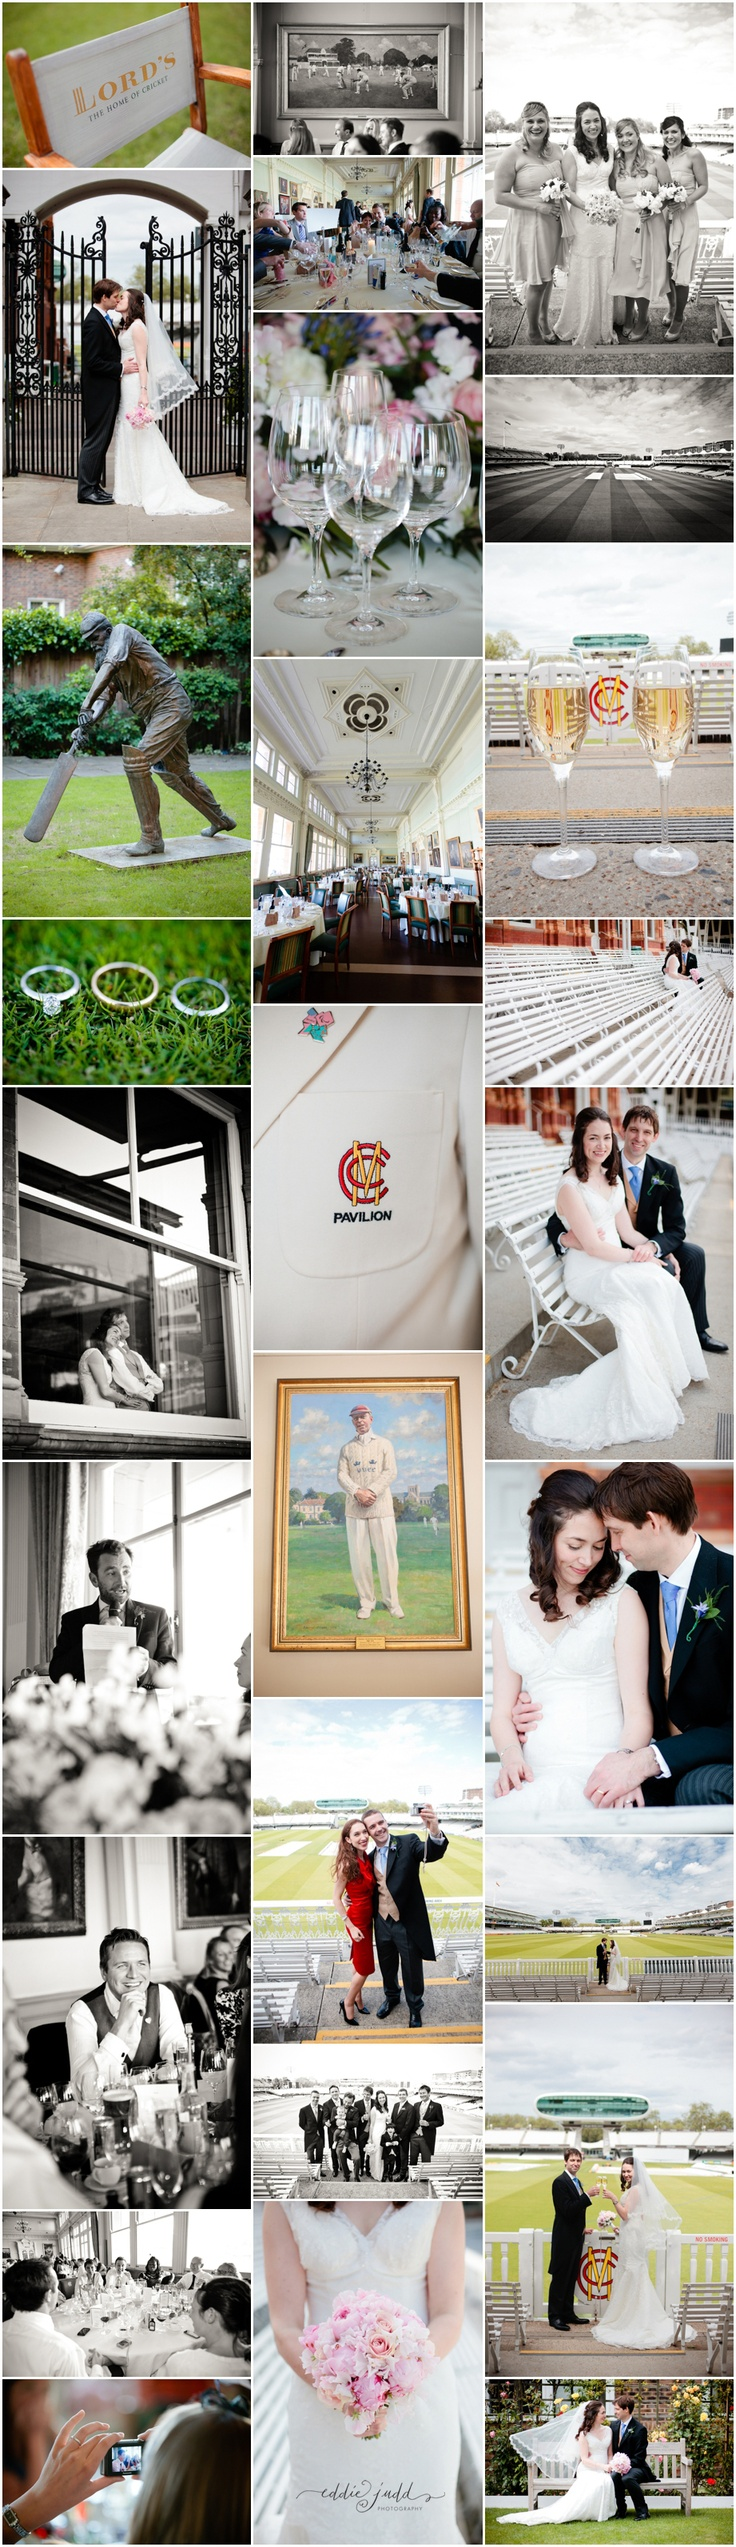 Lords Cricket Ground wedding | Wedding photography | Eddie Judd Photography